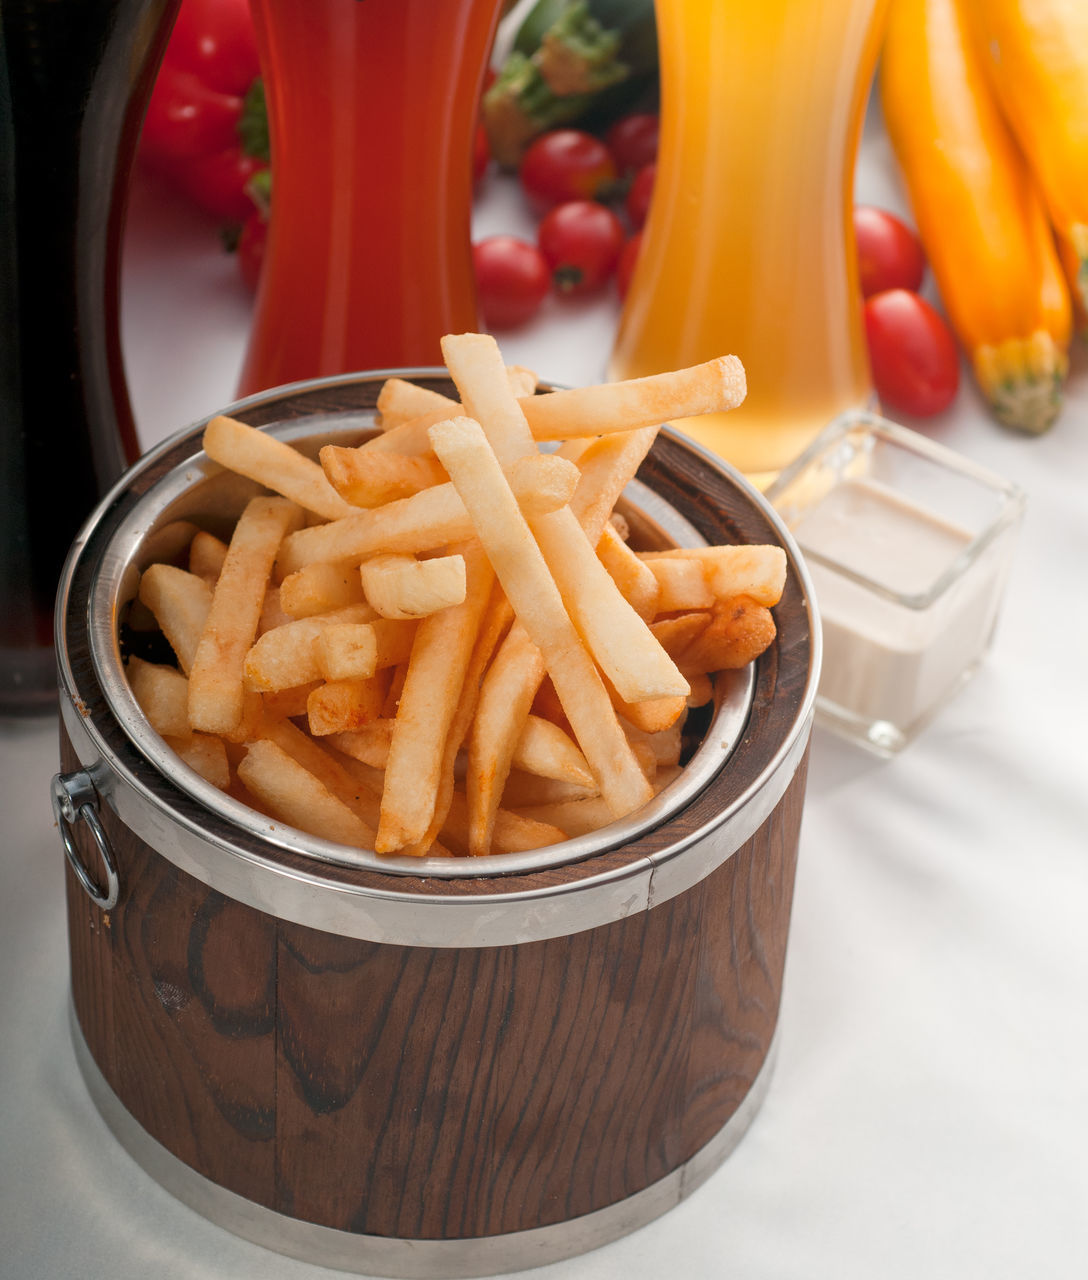 High Angle View Of French Fries In Container With Juices